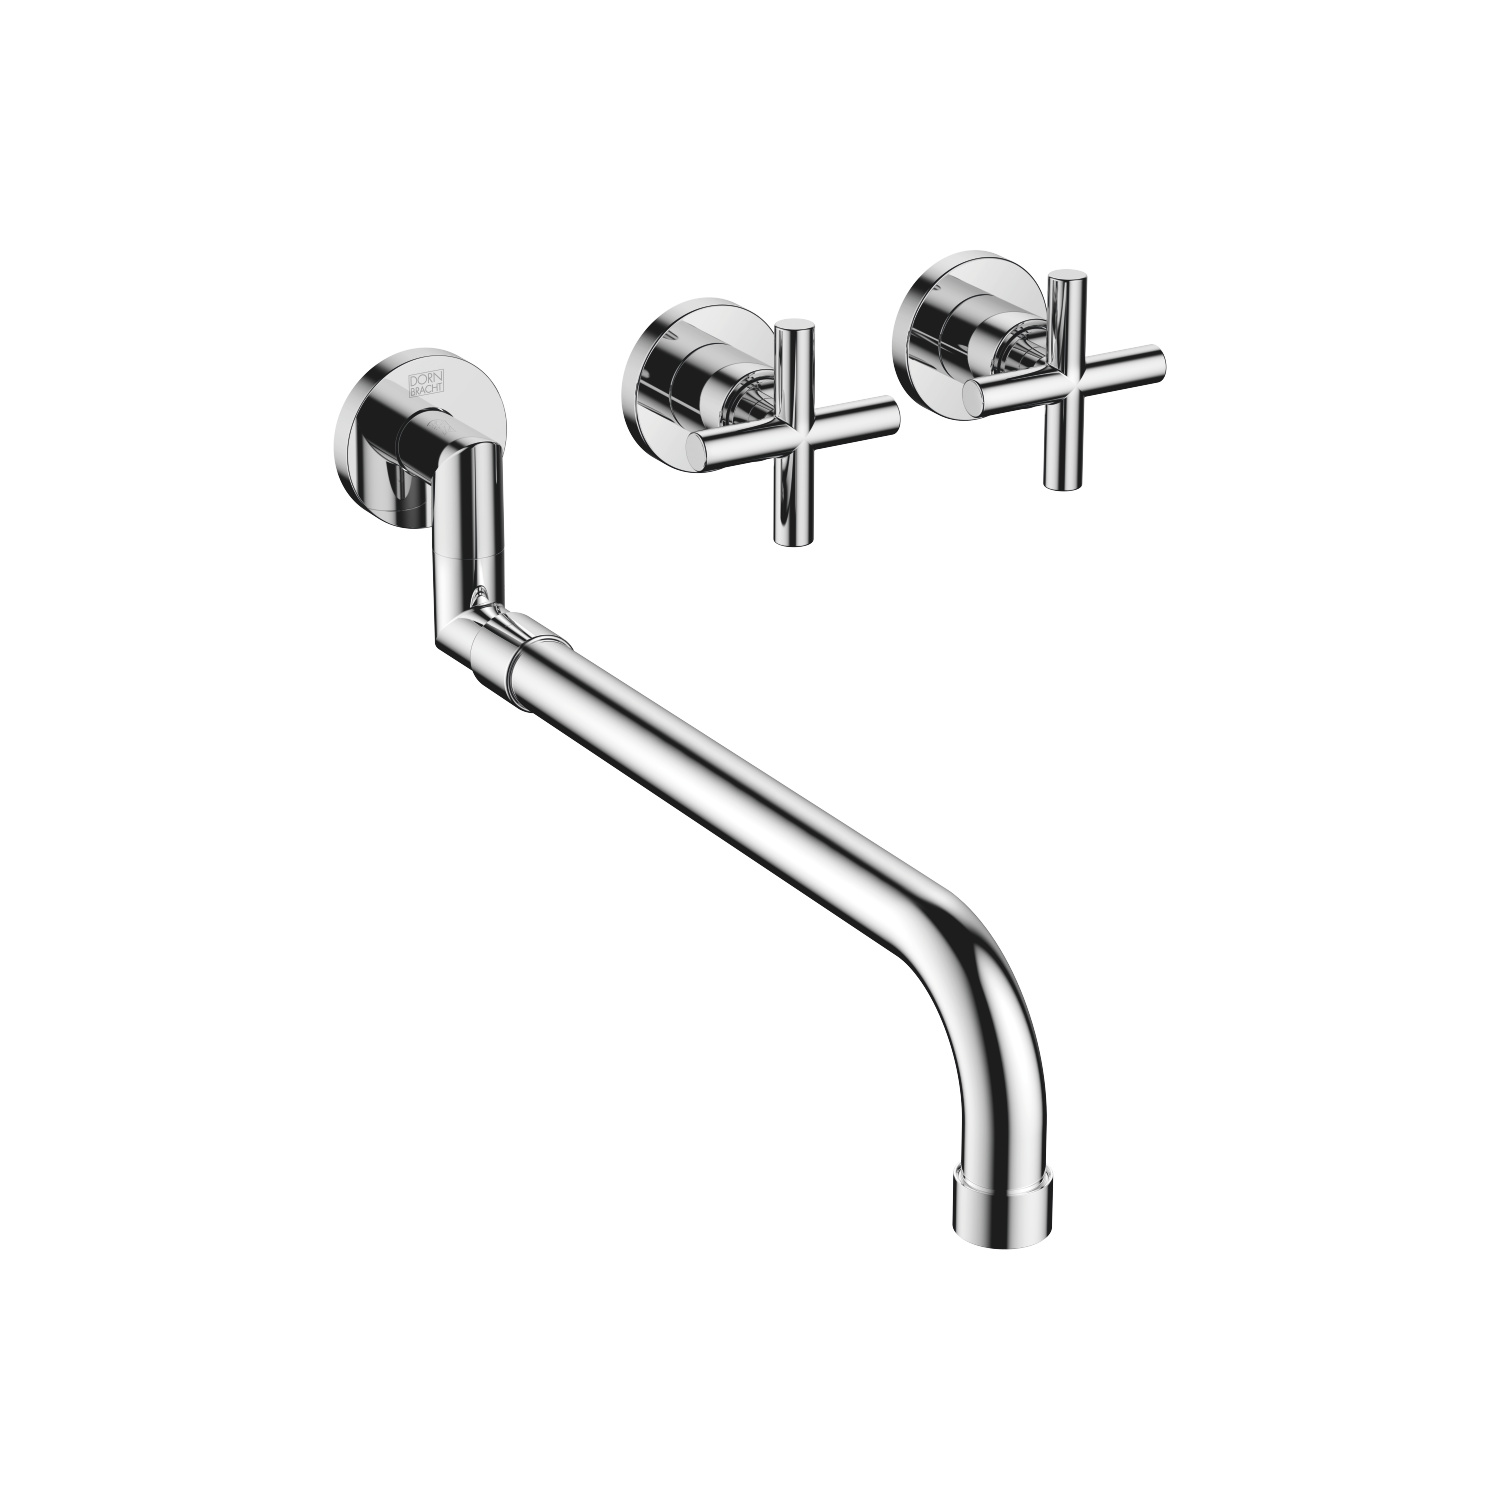 Wall-mounted sink mixer with extending spout - polished chrome